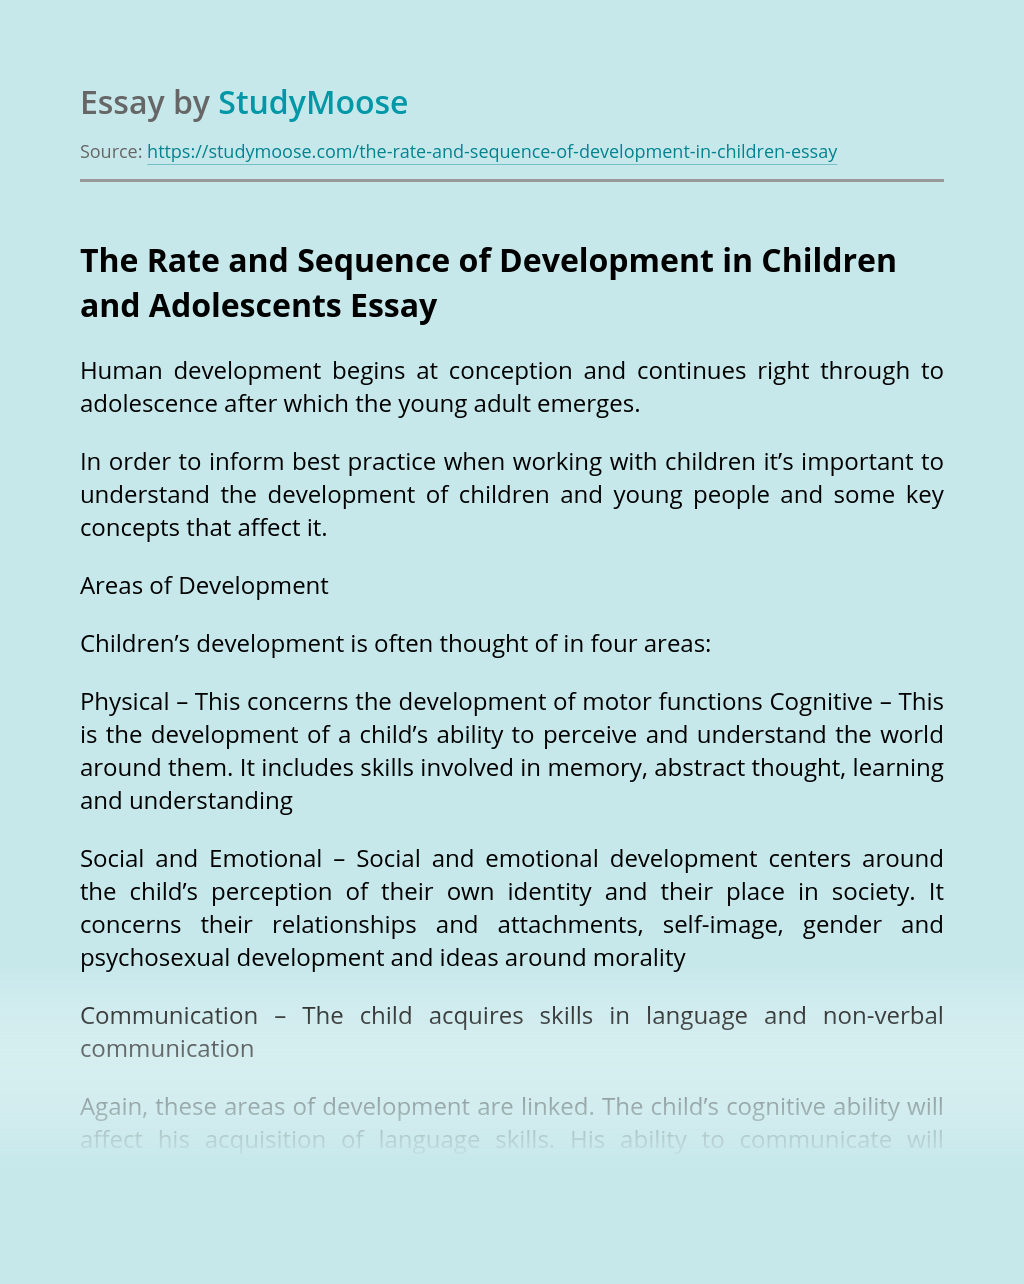 The Rate and Sequence of Development in Children and Adolescents